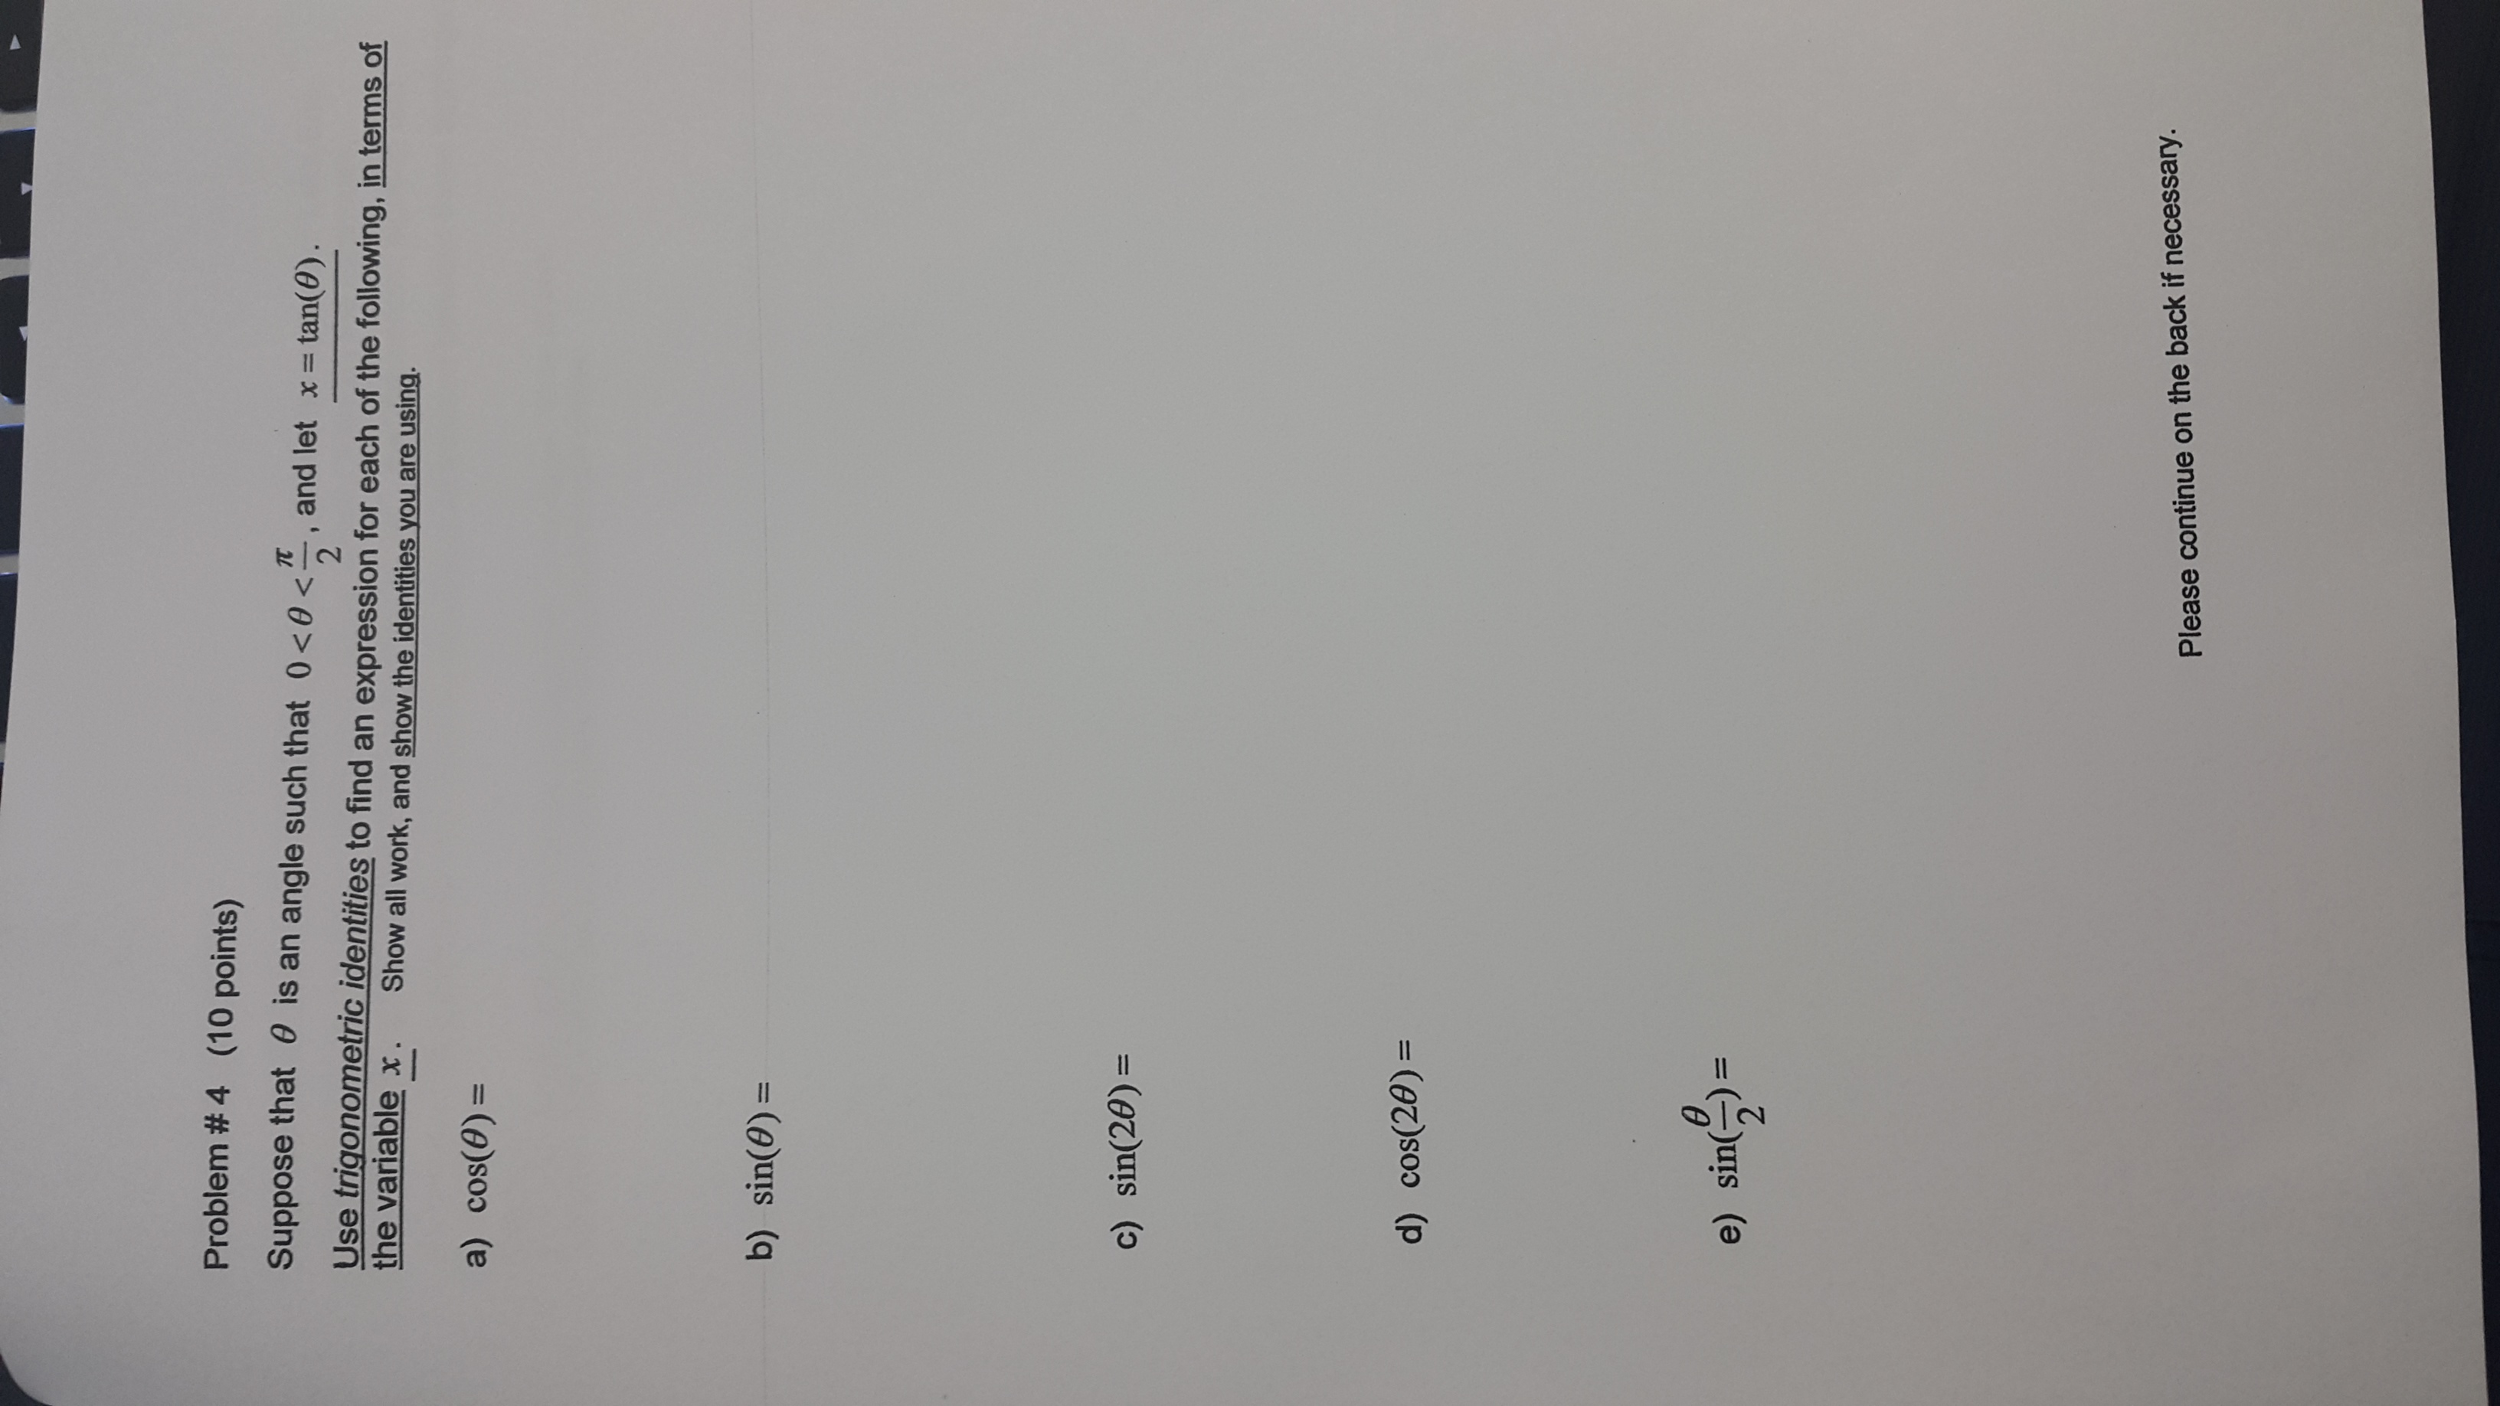 Awesome Can You Help Me With Math Frieze - Math Worksheets - modopol.com